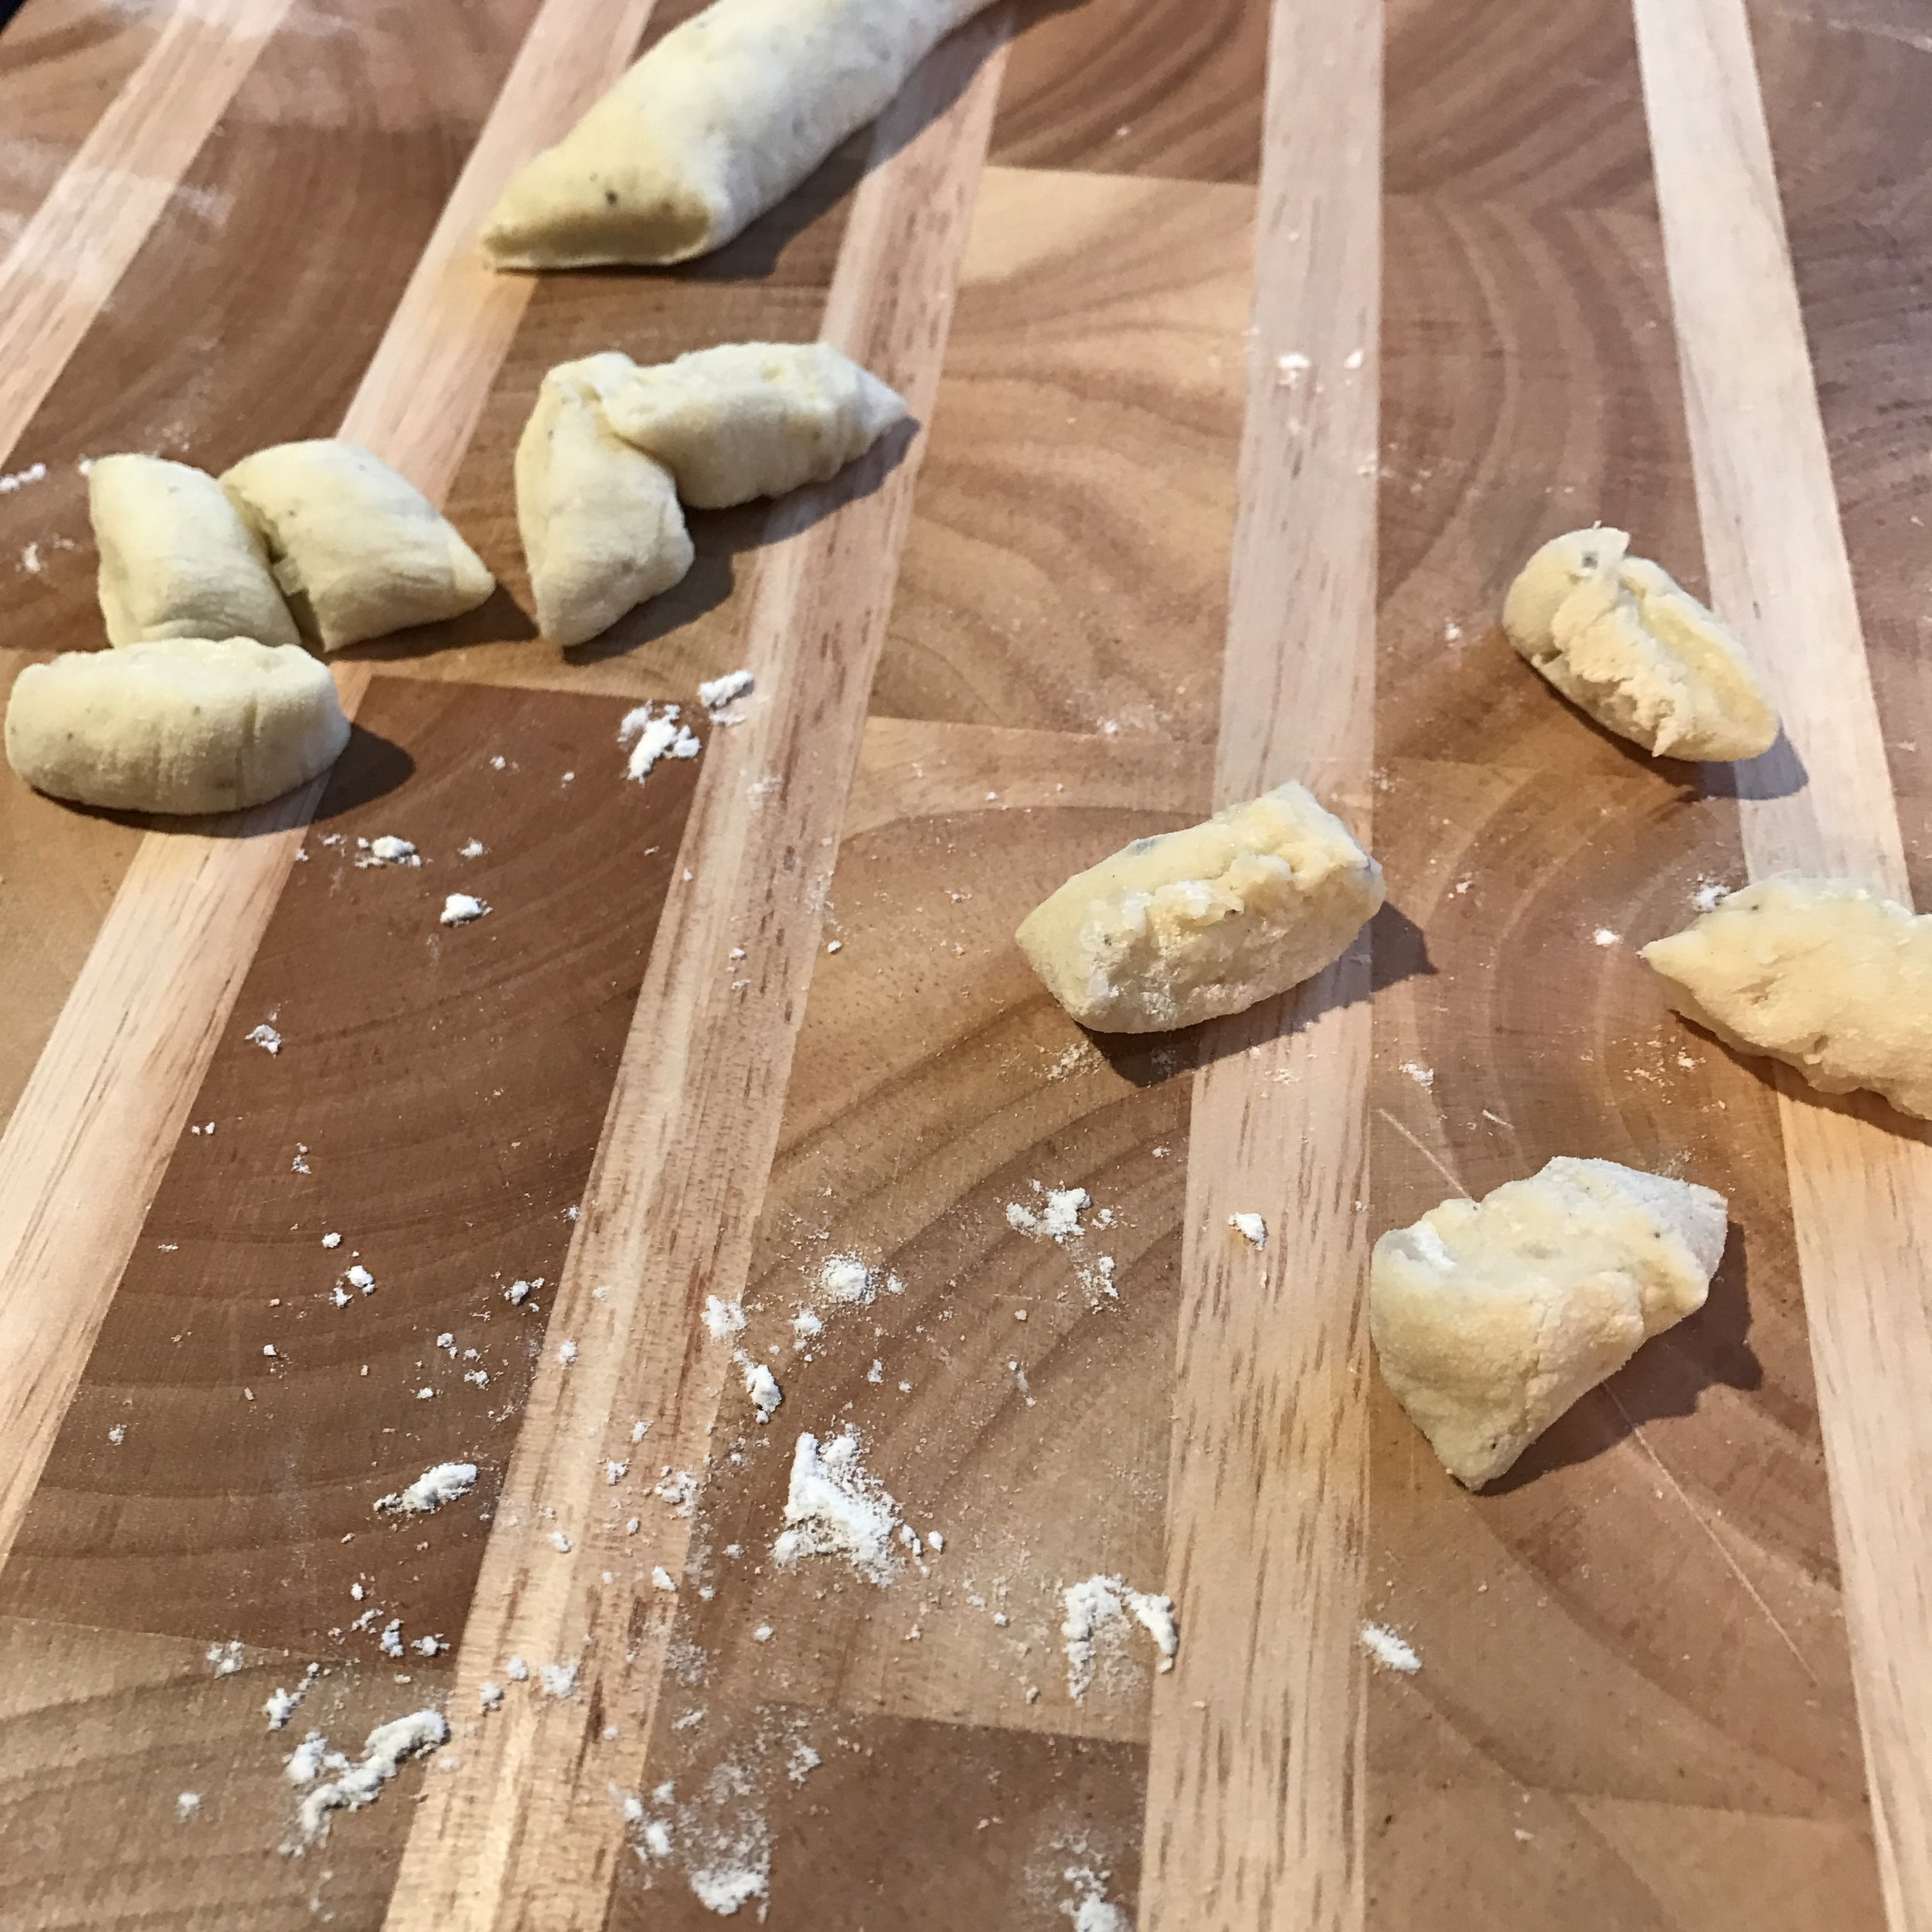 So you want to make home-made pasta but you don't want to spend the rest of your life kneading dough or hunting down pasta maker attachments? Bingo! Gnocchi! Toddler approved and easy to make from scratch!